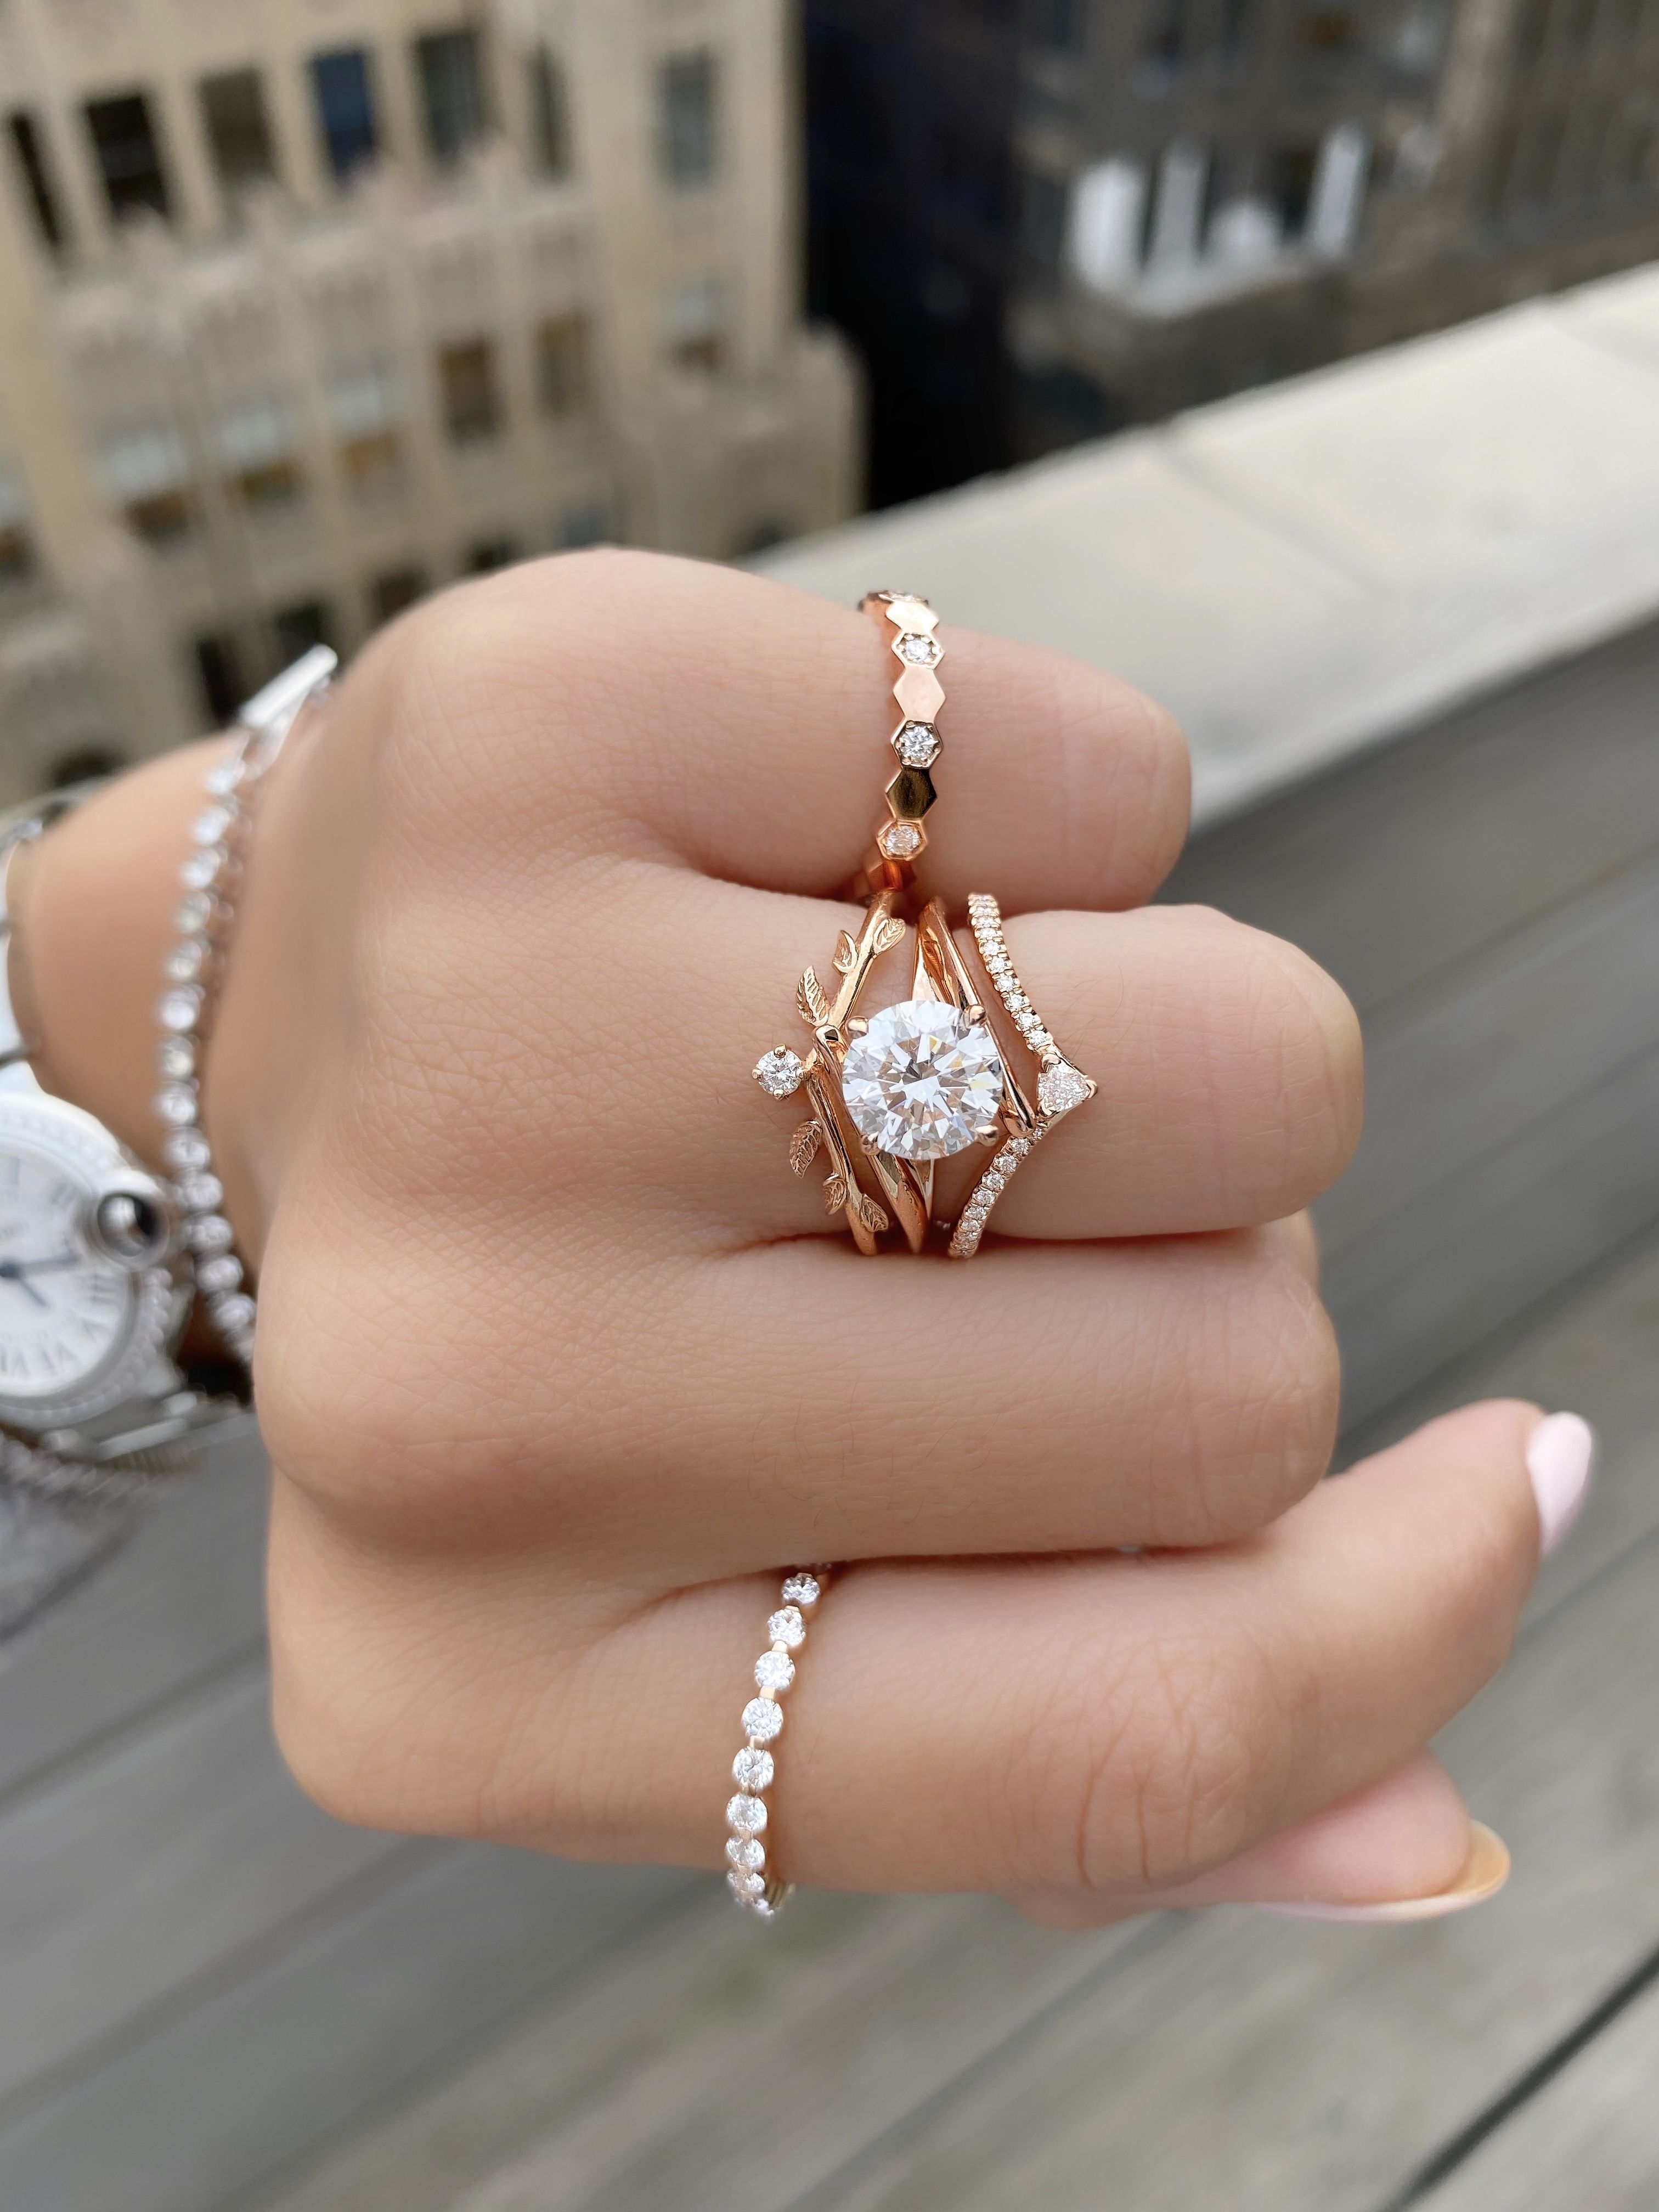 47+ Rose gold wedding ring sets ideas ideas in 2021